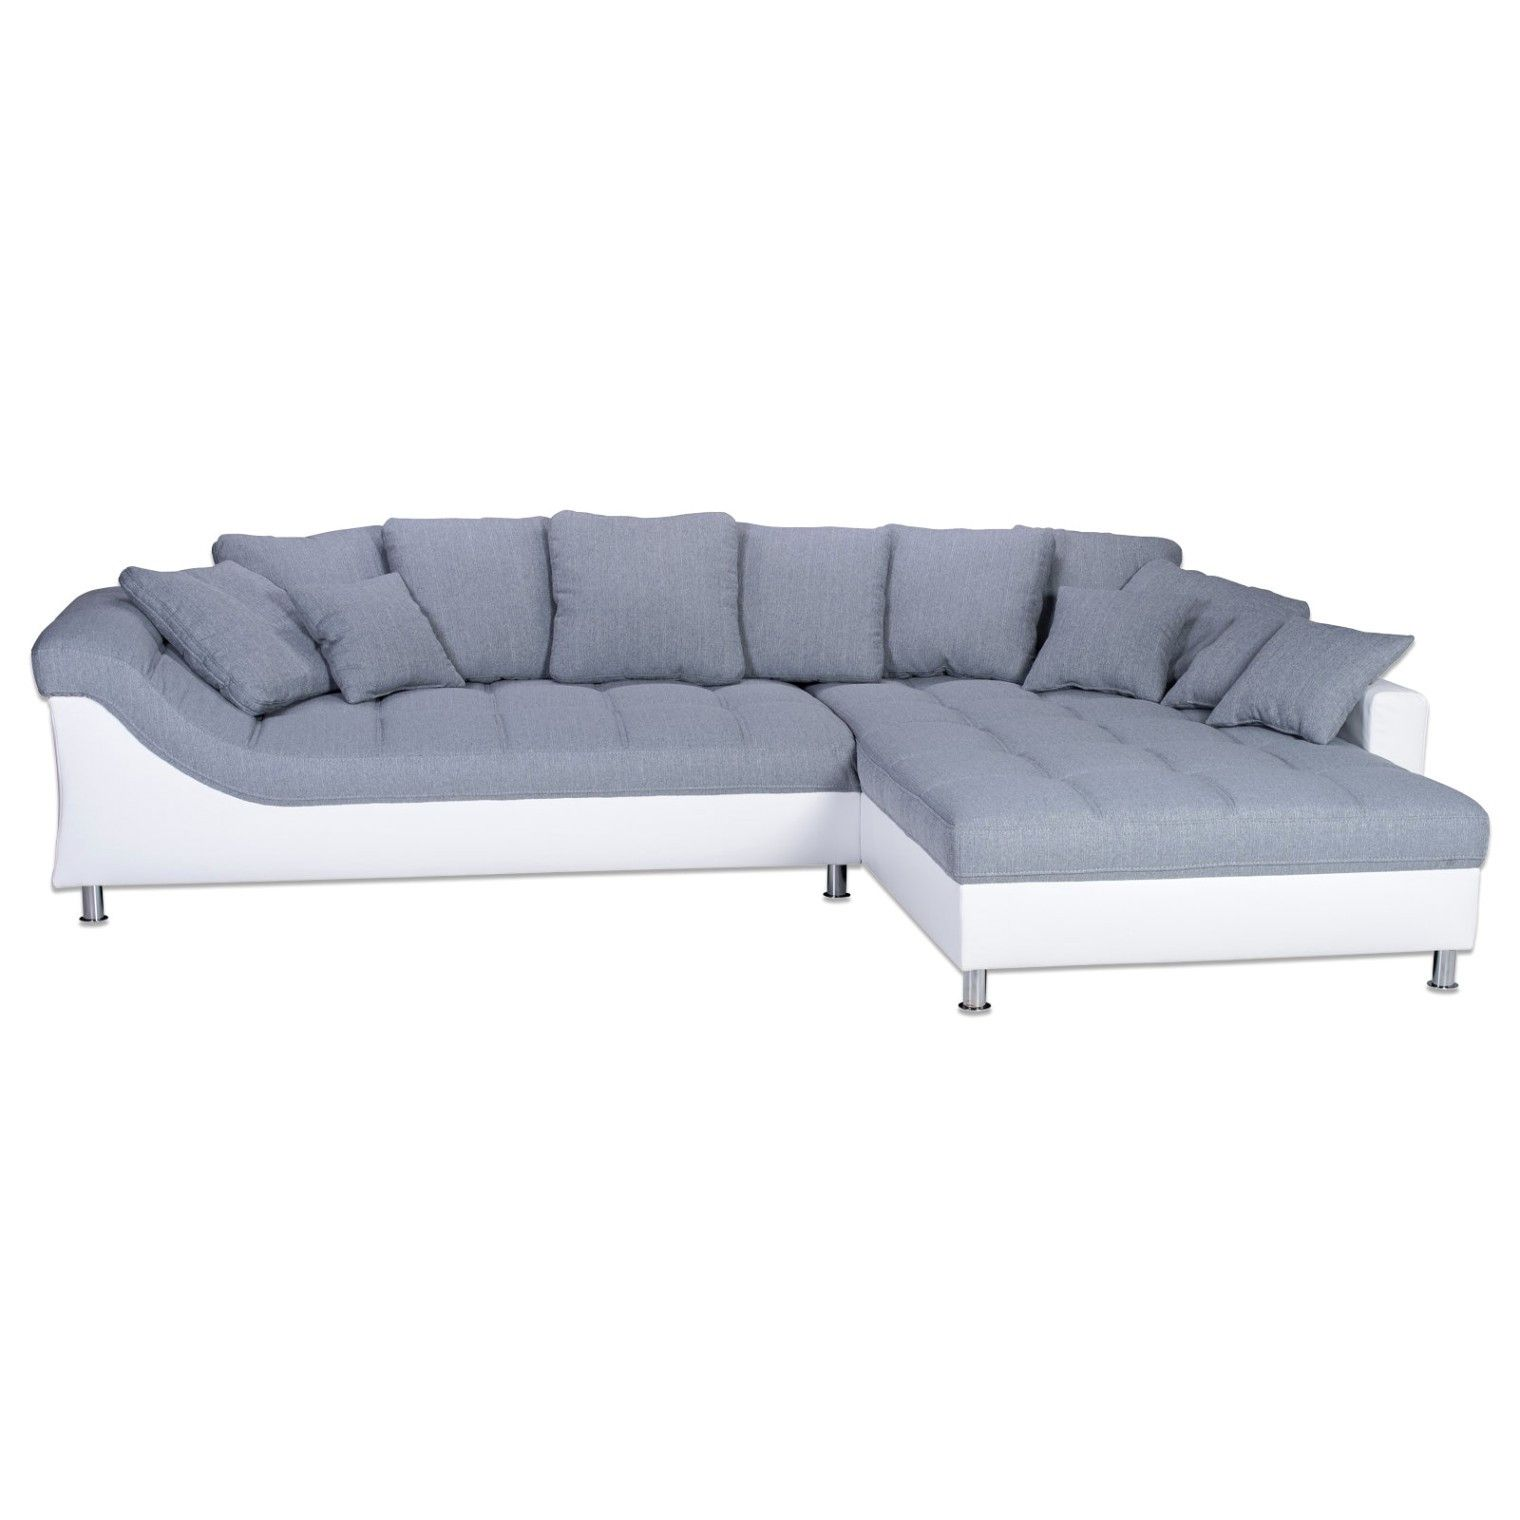 Marvelous Roller Funktionsecke Modern Couch Home Decor Home